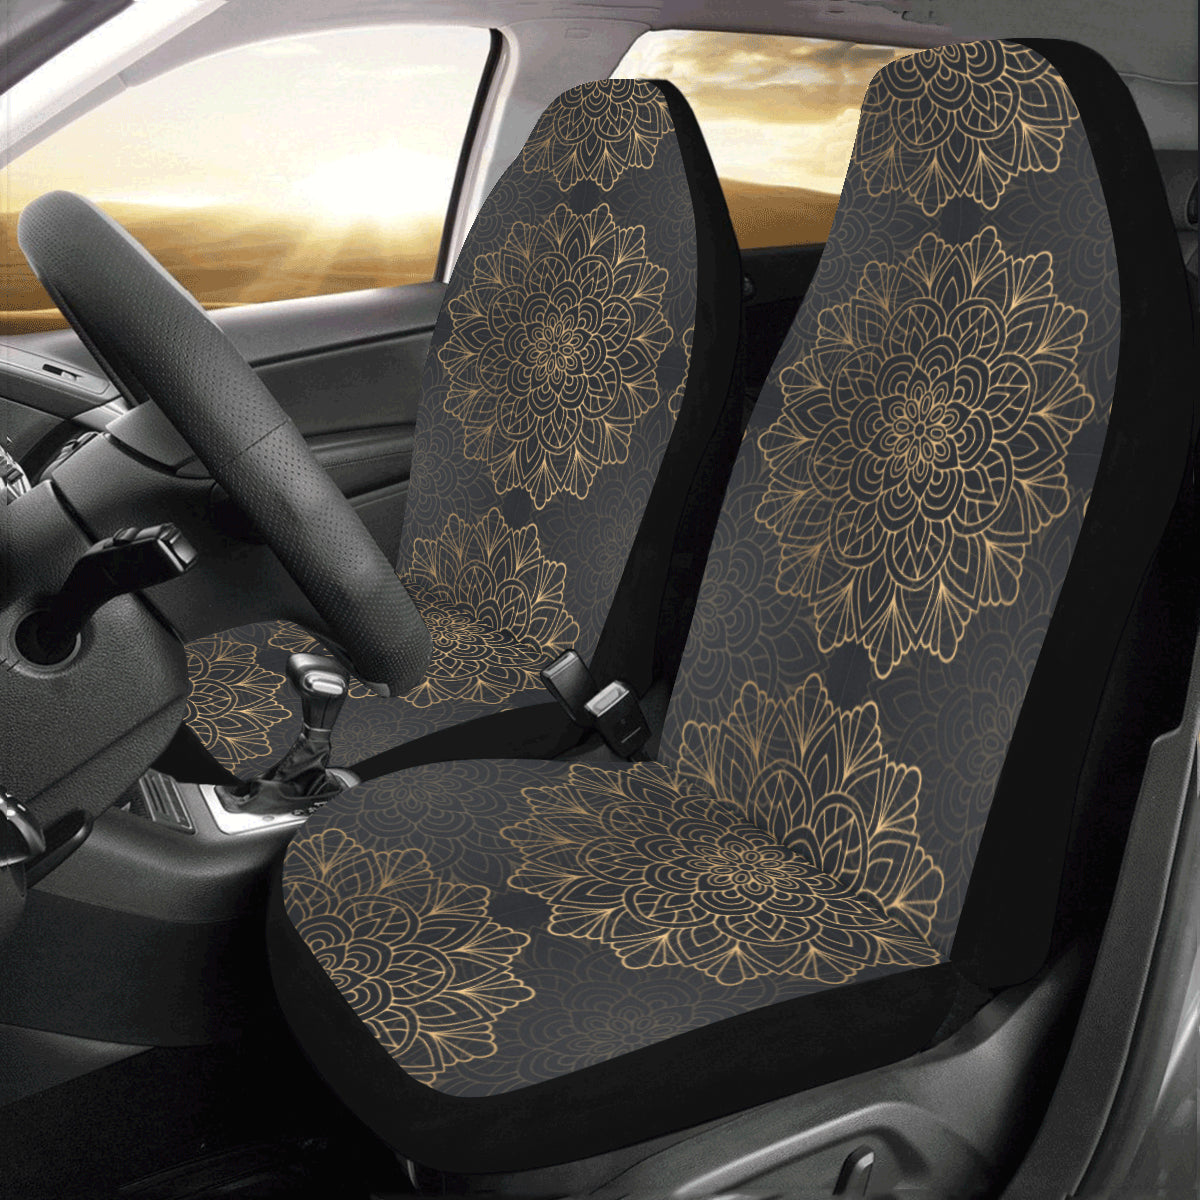 Black Mandala Boho Car Seat Covers 2 pc, Tribal Indian Pattern Bohemian Oriental Art Front Seat Covers, Car SUV Protector Accessory Decor - Starcove Design